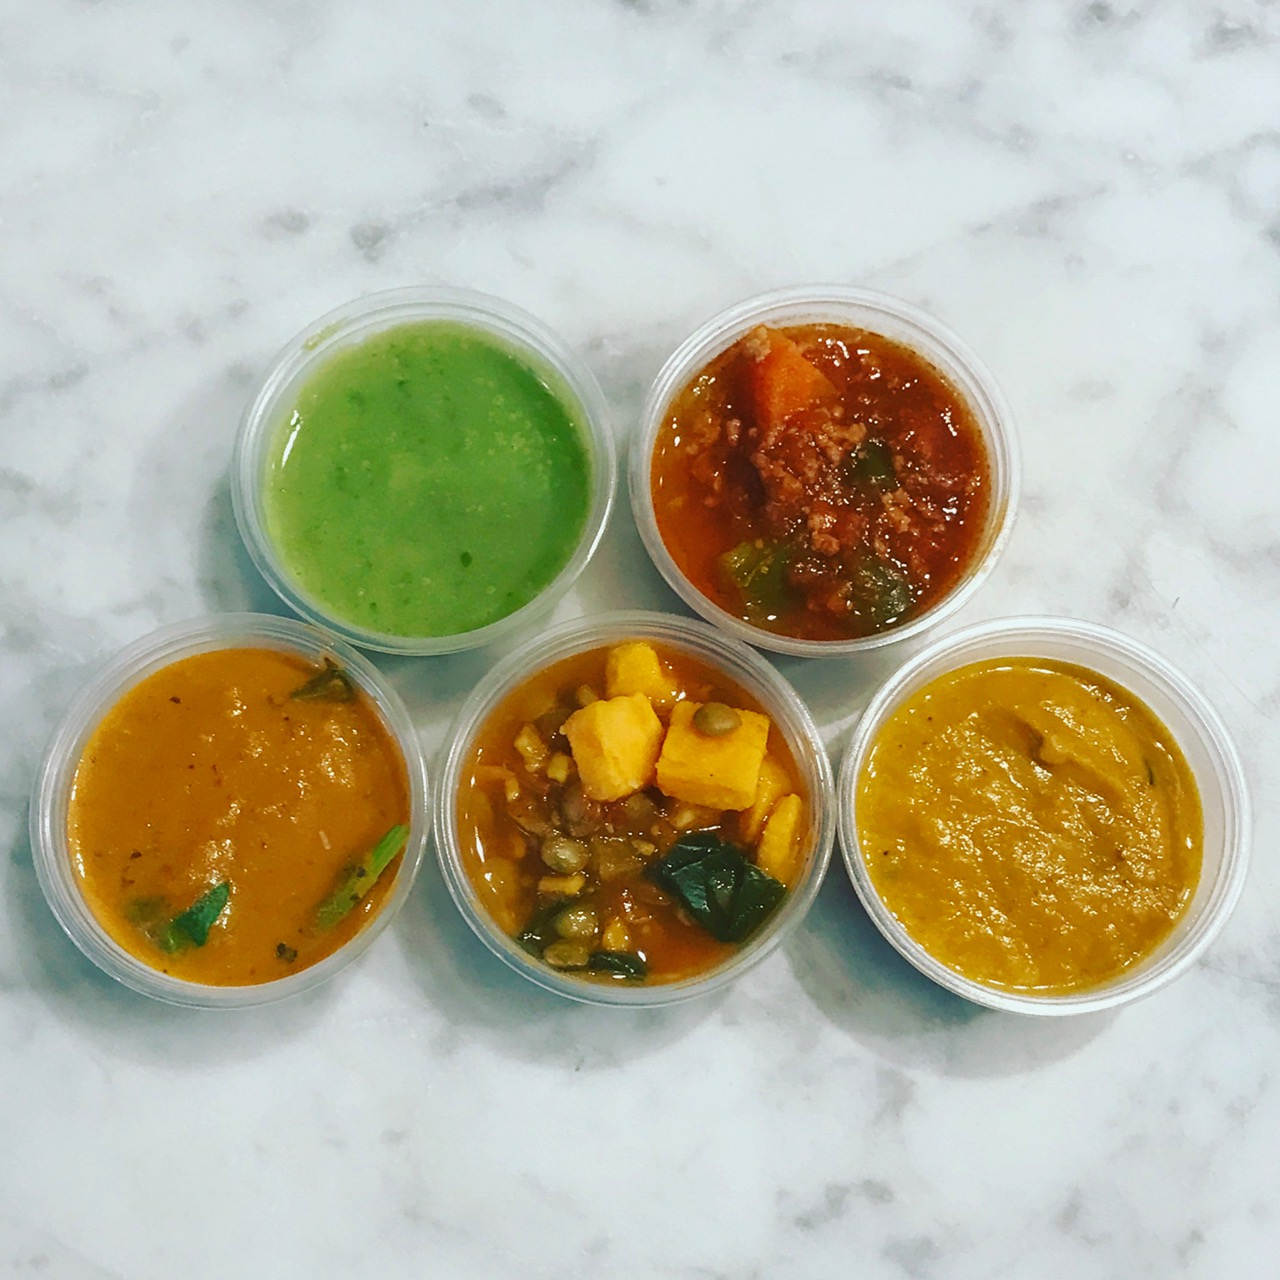 SOUPS   Soups rotate daily and change with the seasons. All of our stocks are made from scratch and are low in sodium. If we use dairy, it is non-GMO, locally sourced and grass-fed.   Pictured:  Green Goodness, Turkey Chili, Tomato Spinach, Sweet Potato & Collard Stew, Pumpkin Coconut